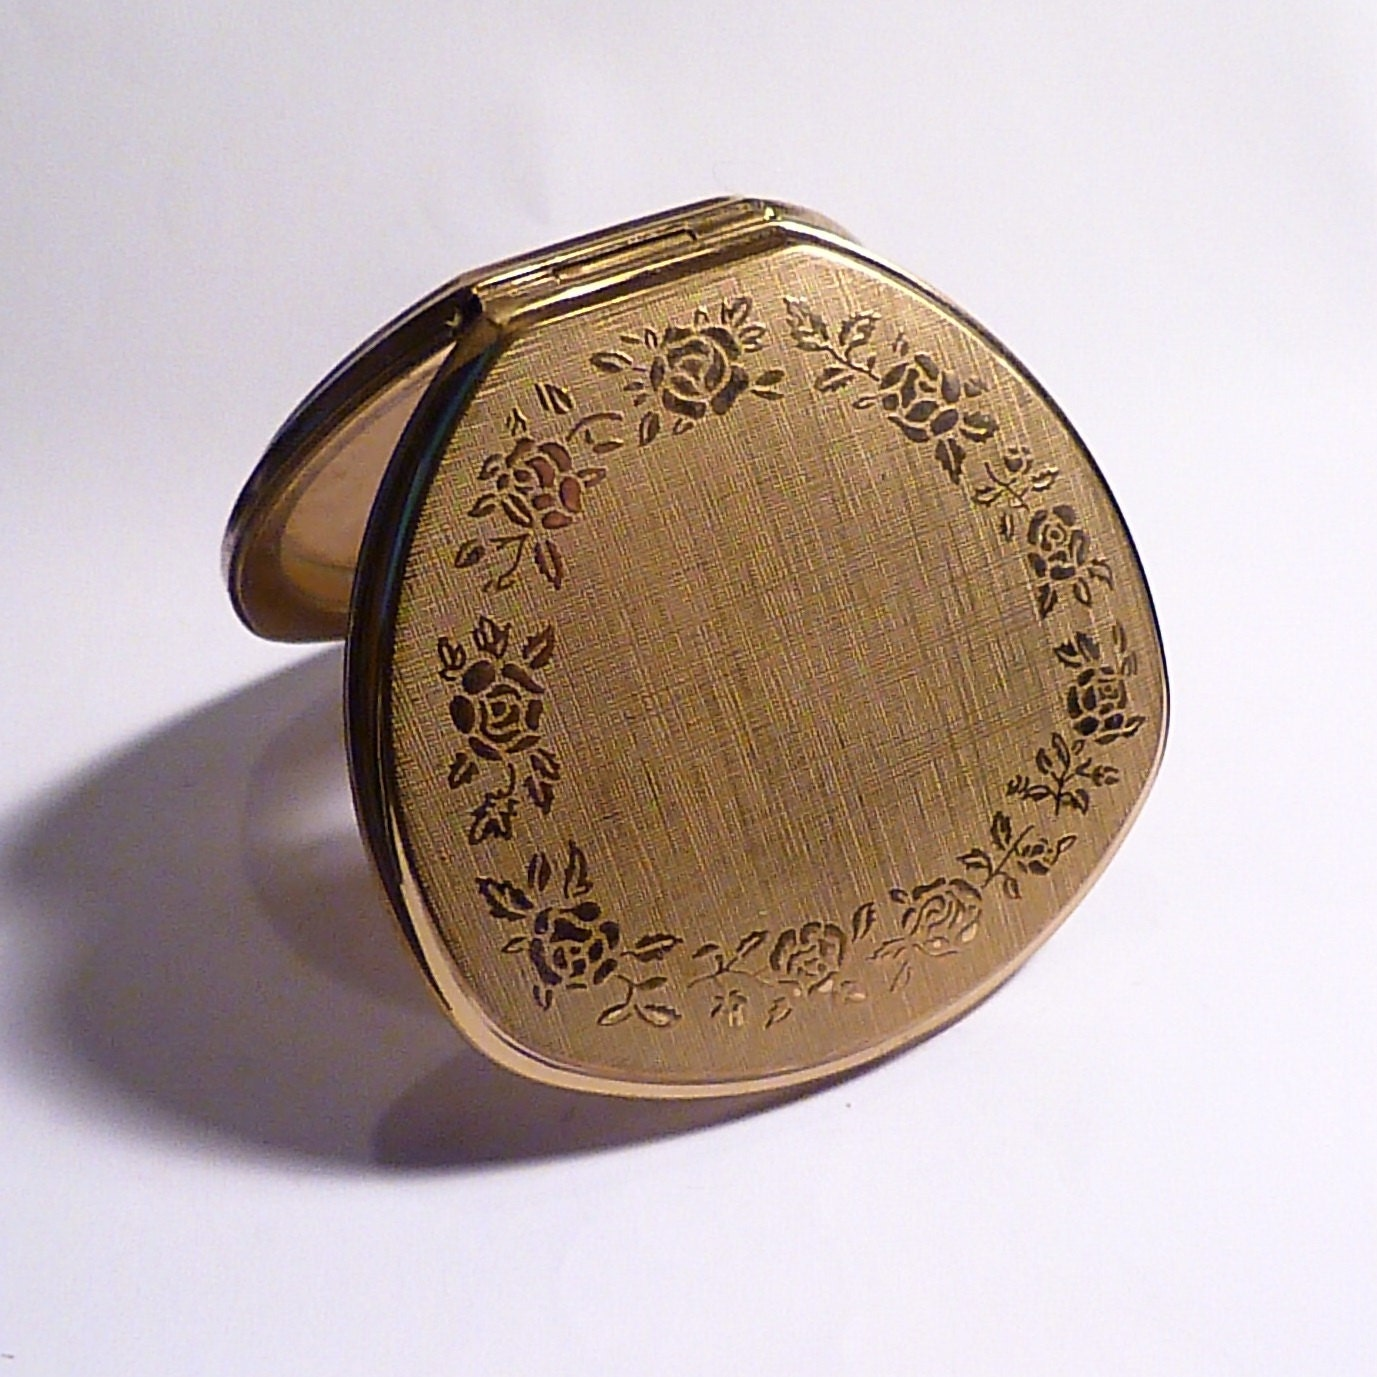 Vintage compact mirrors Stratton powder compacts 1970 Shell Convertible compact bridesmaids  brides gifts